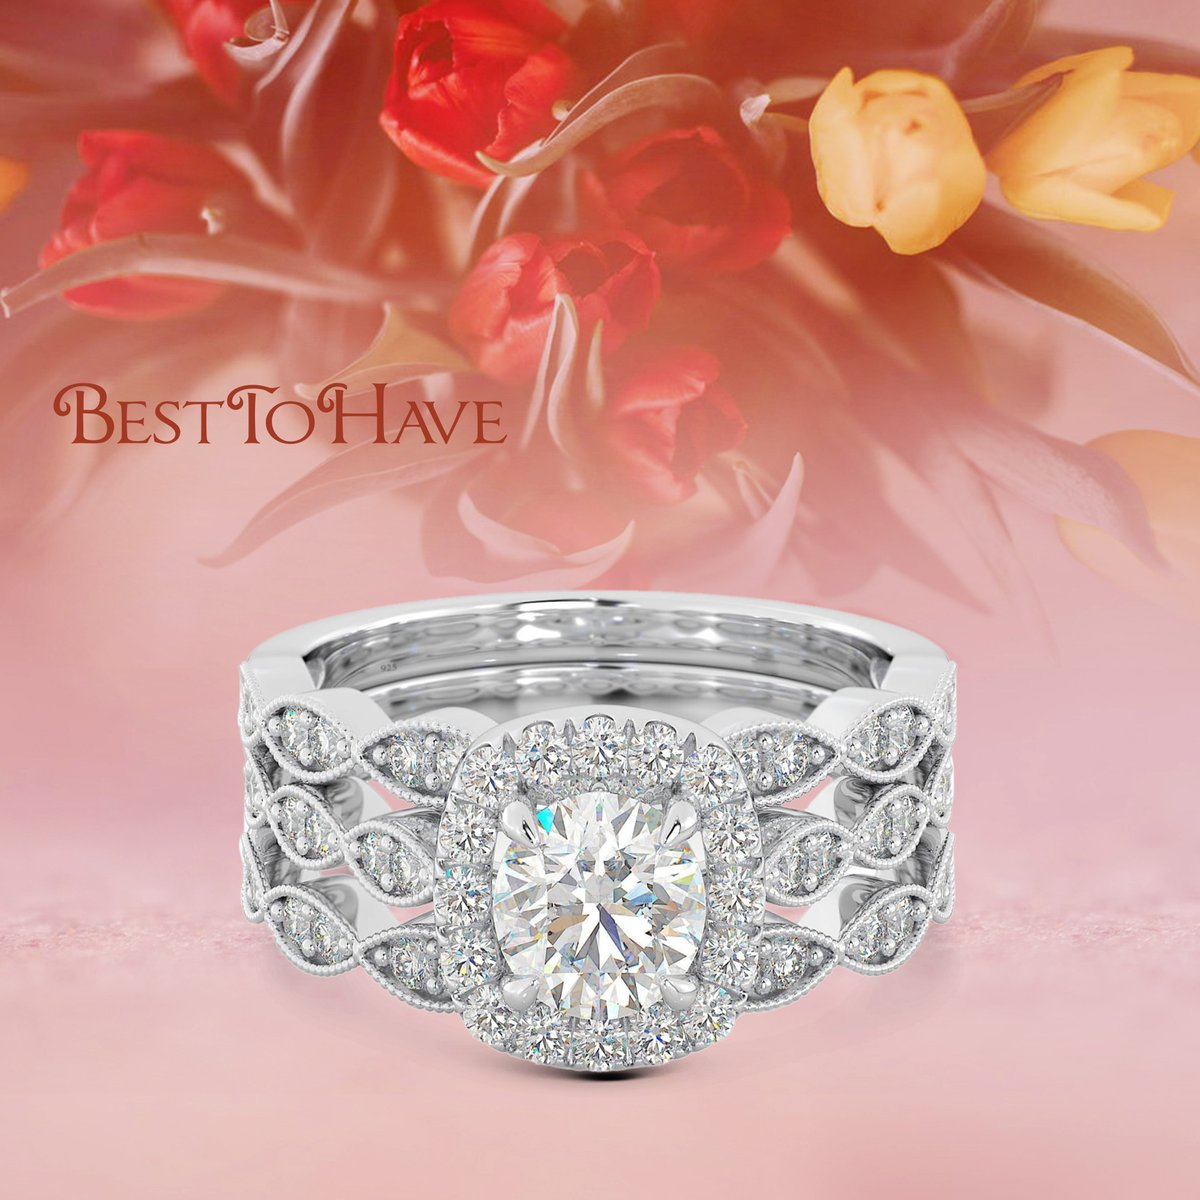 Our amazing 'Belle Amour Bridal Three Rings Set' For only £39.99 Product code: 382 Shop more:  #womenrings #weddingrings #lovejewelry #silverjewelry #sterlingsilver #cubiczirconia #besttohave #besttohavejewelry #silverring #zirconia #silver925 #engagement